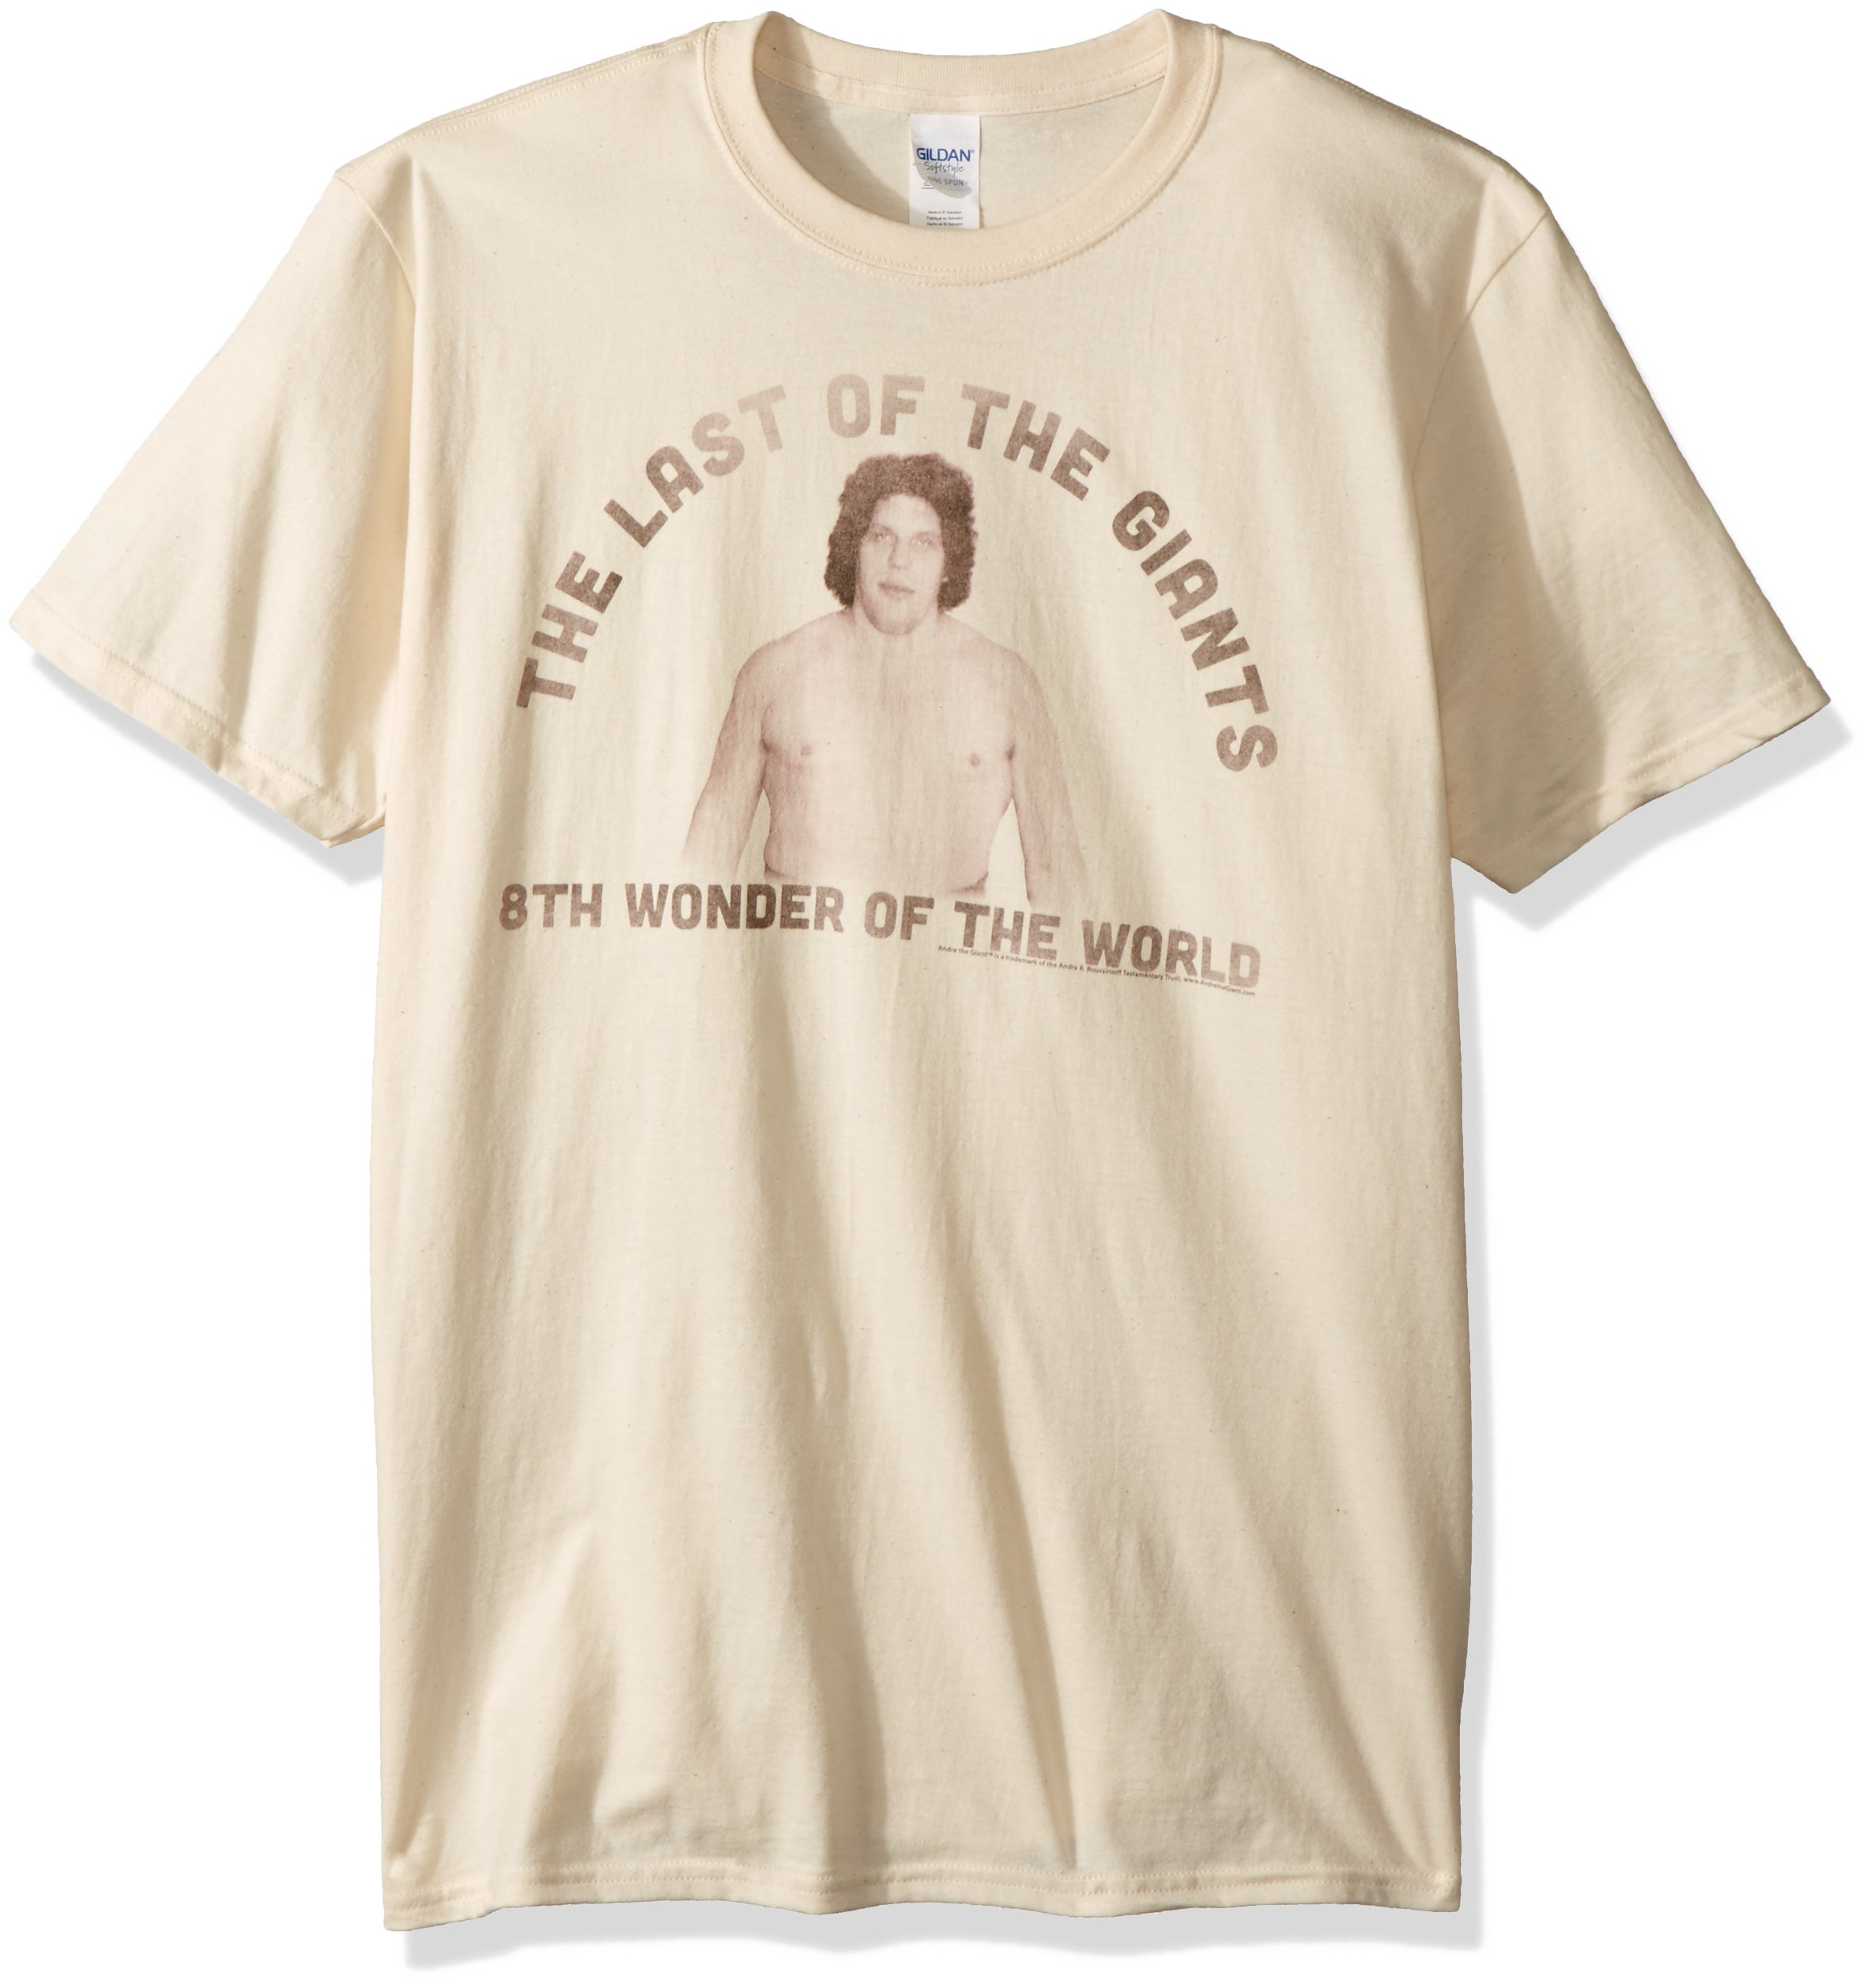 American Classics Unisex-Adults Andre The Giant Big Short Sleeve T-Shirt, Sand, Large